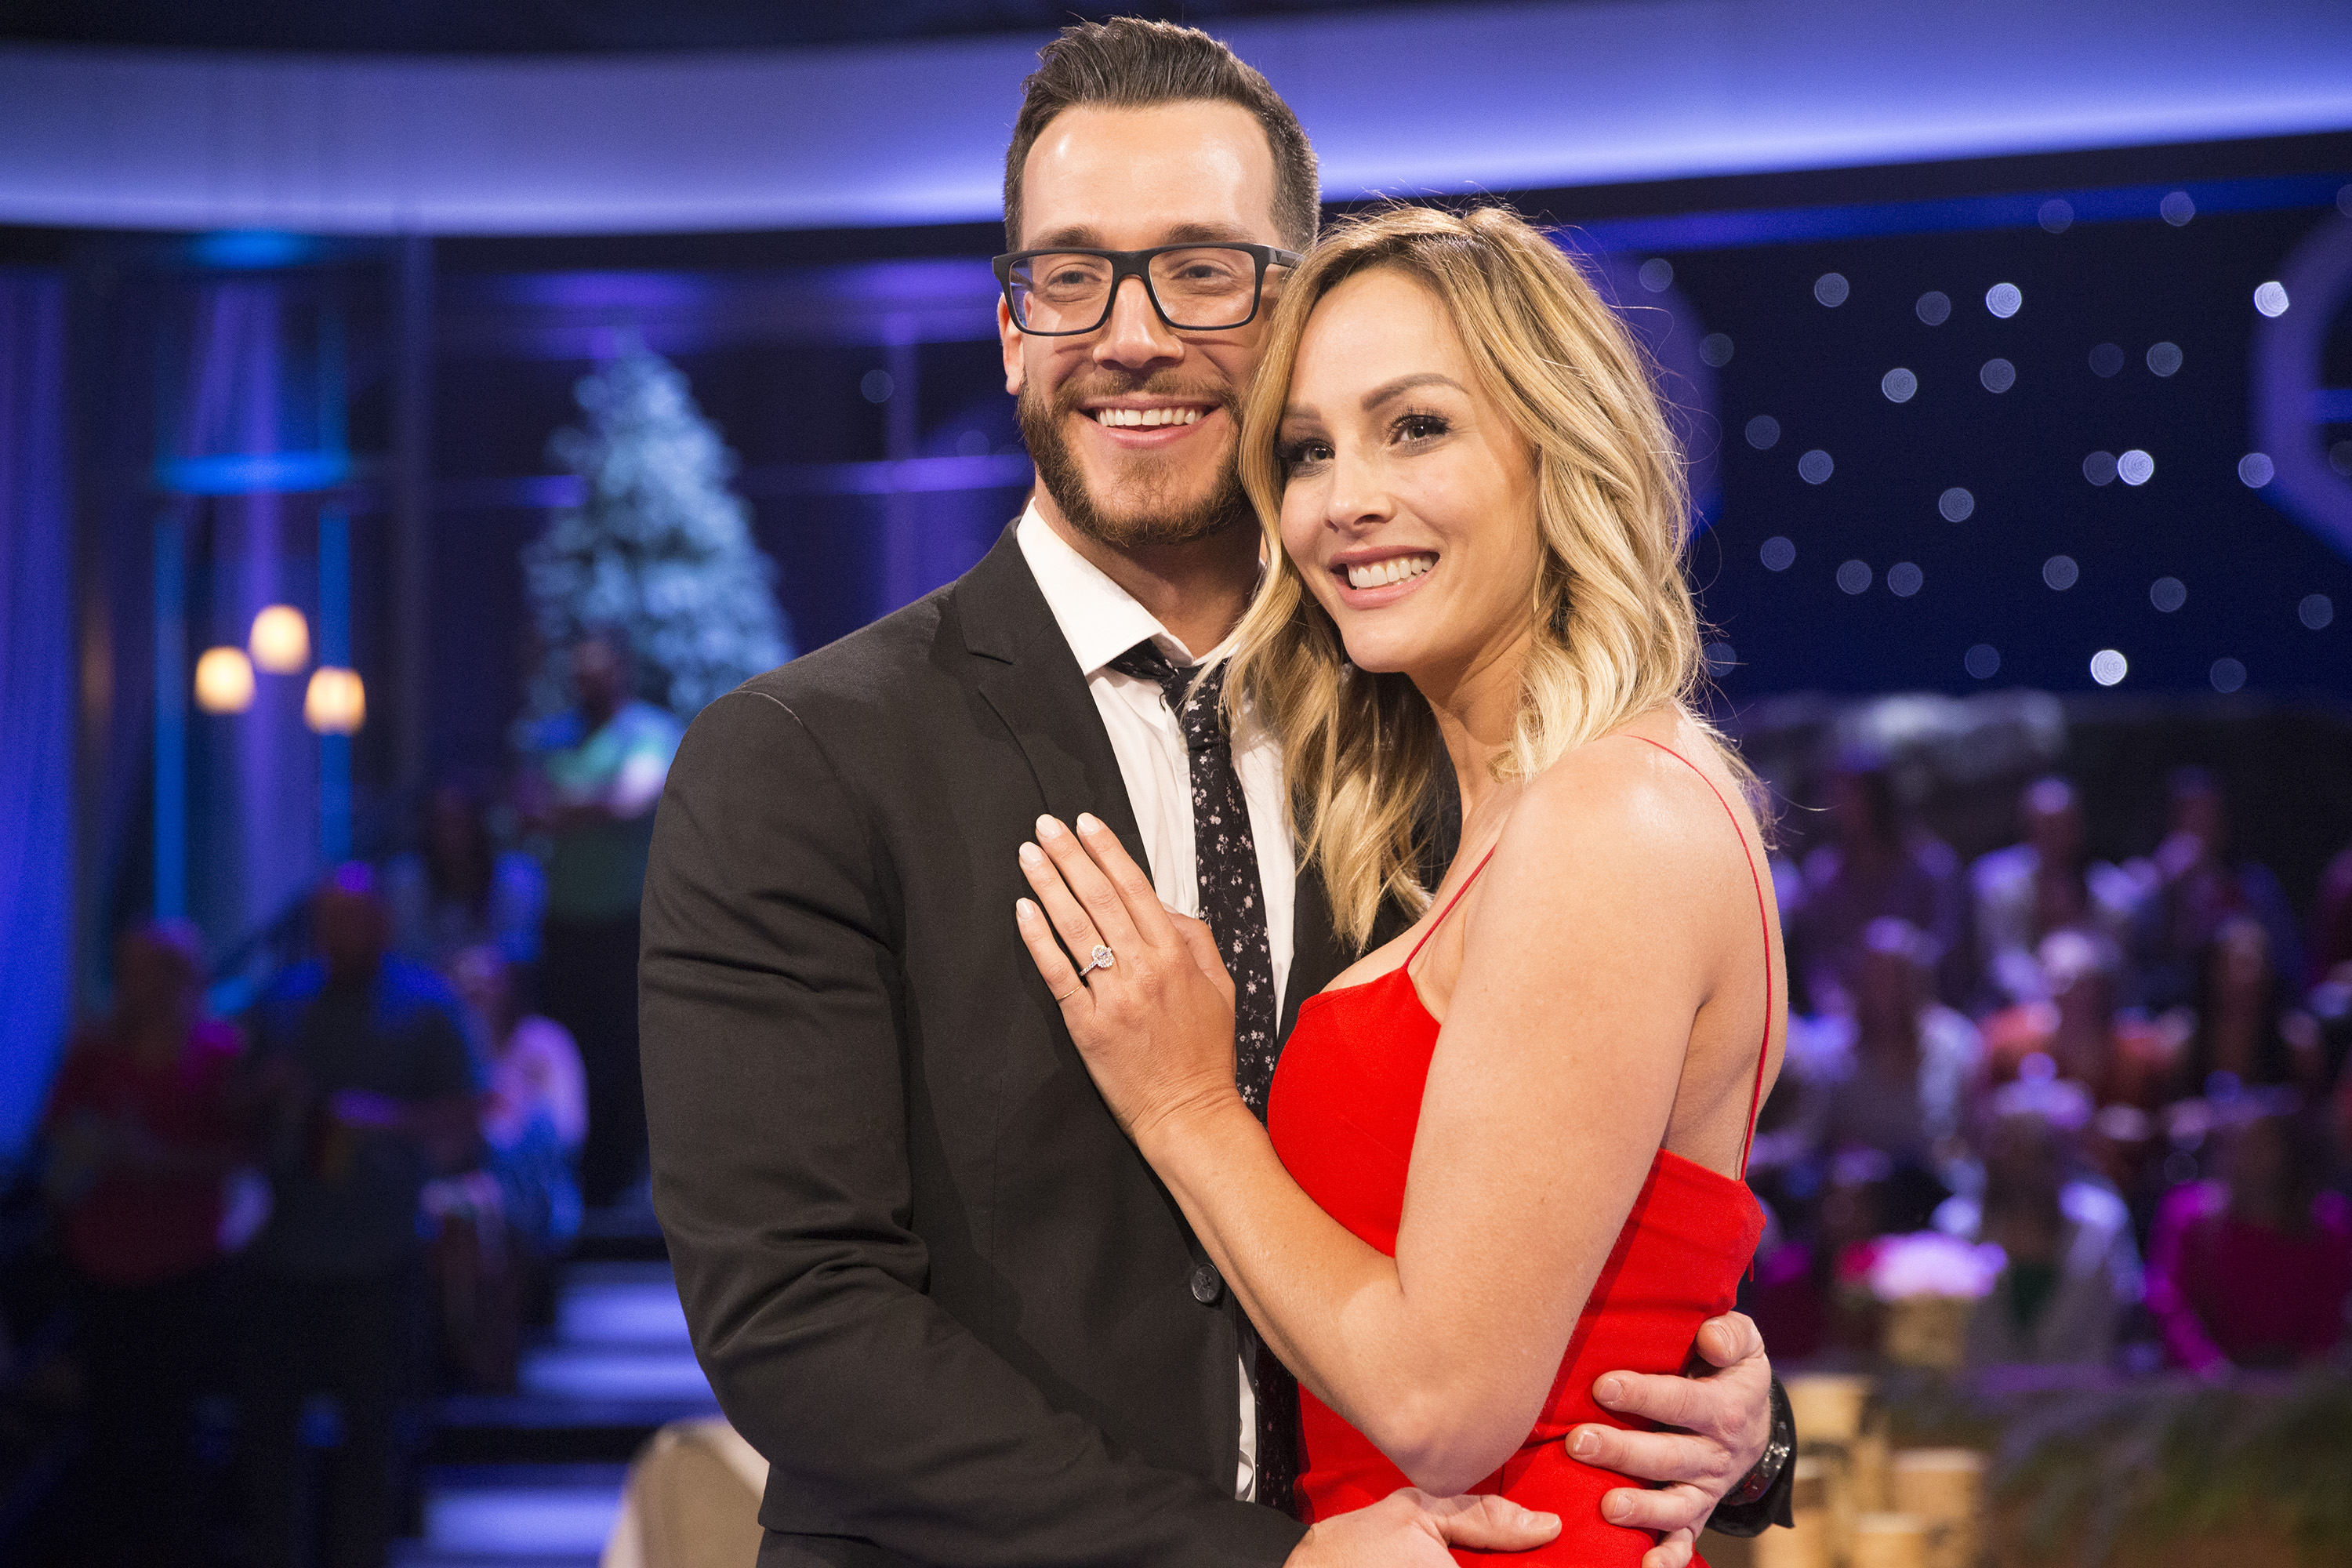 Clare-Crawley-And-Benoit-Beauséjour-Savard-Get-Engaged-After-Bachelor-Winter-Games-Its-Been-Our-Secret